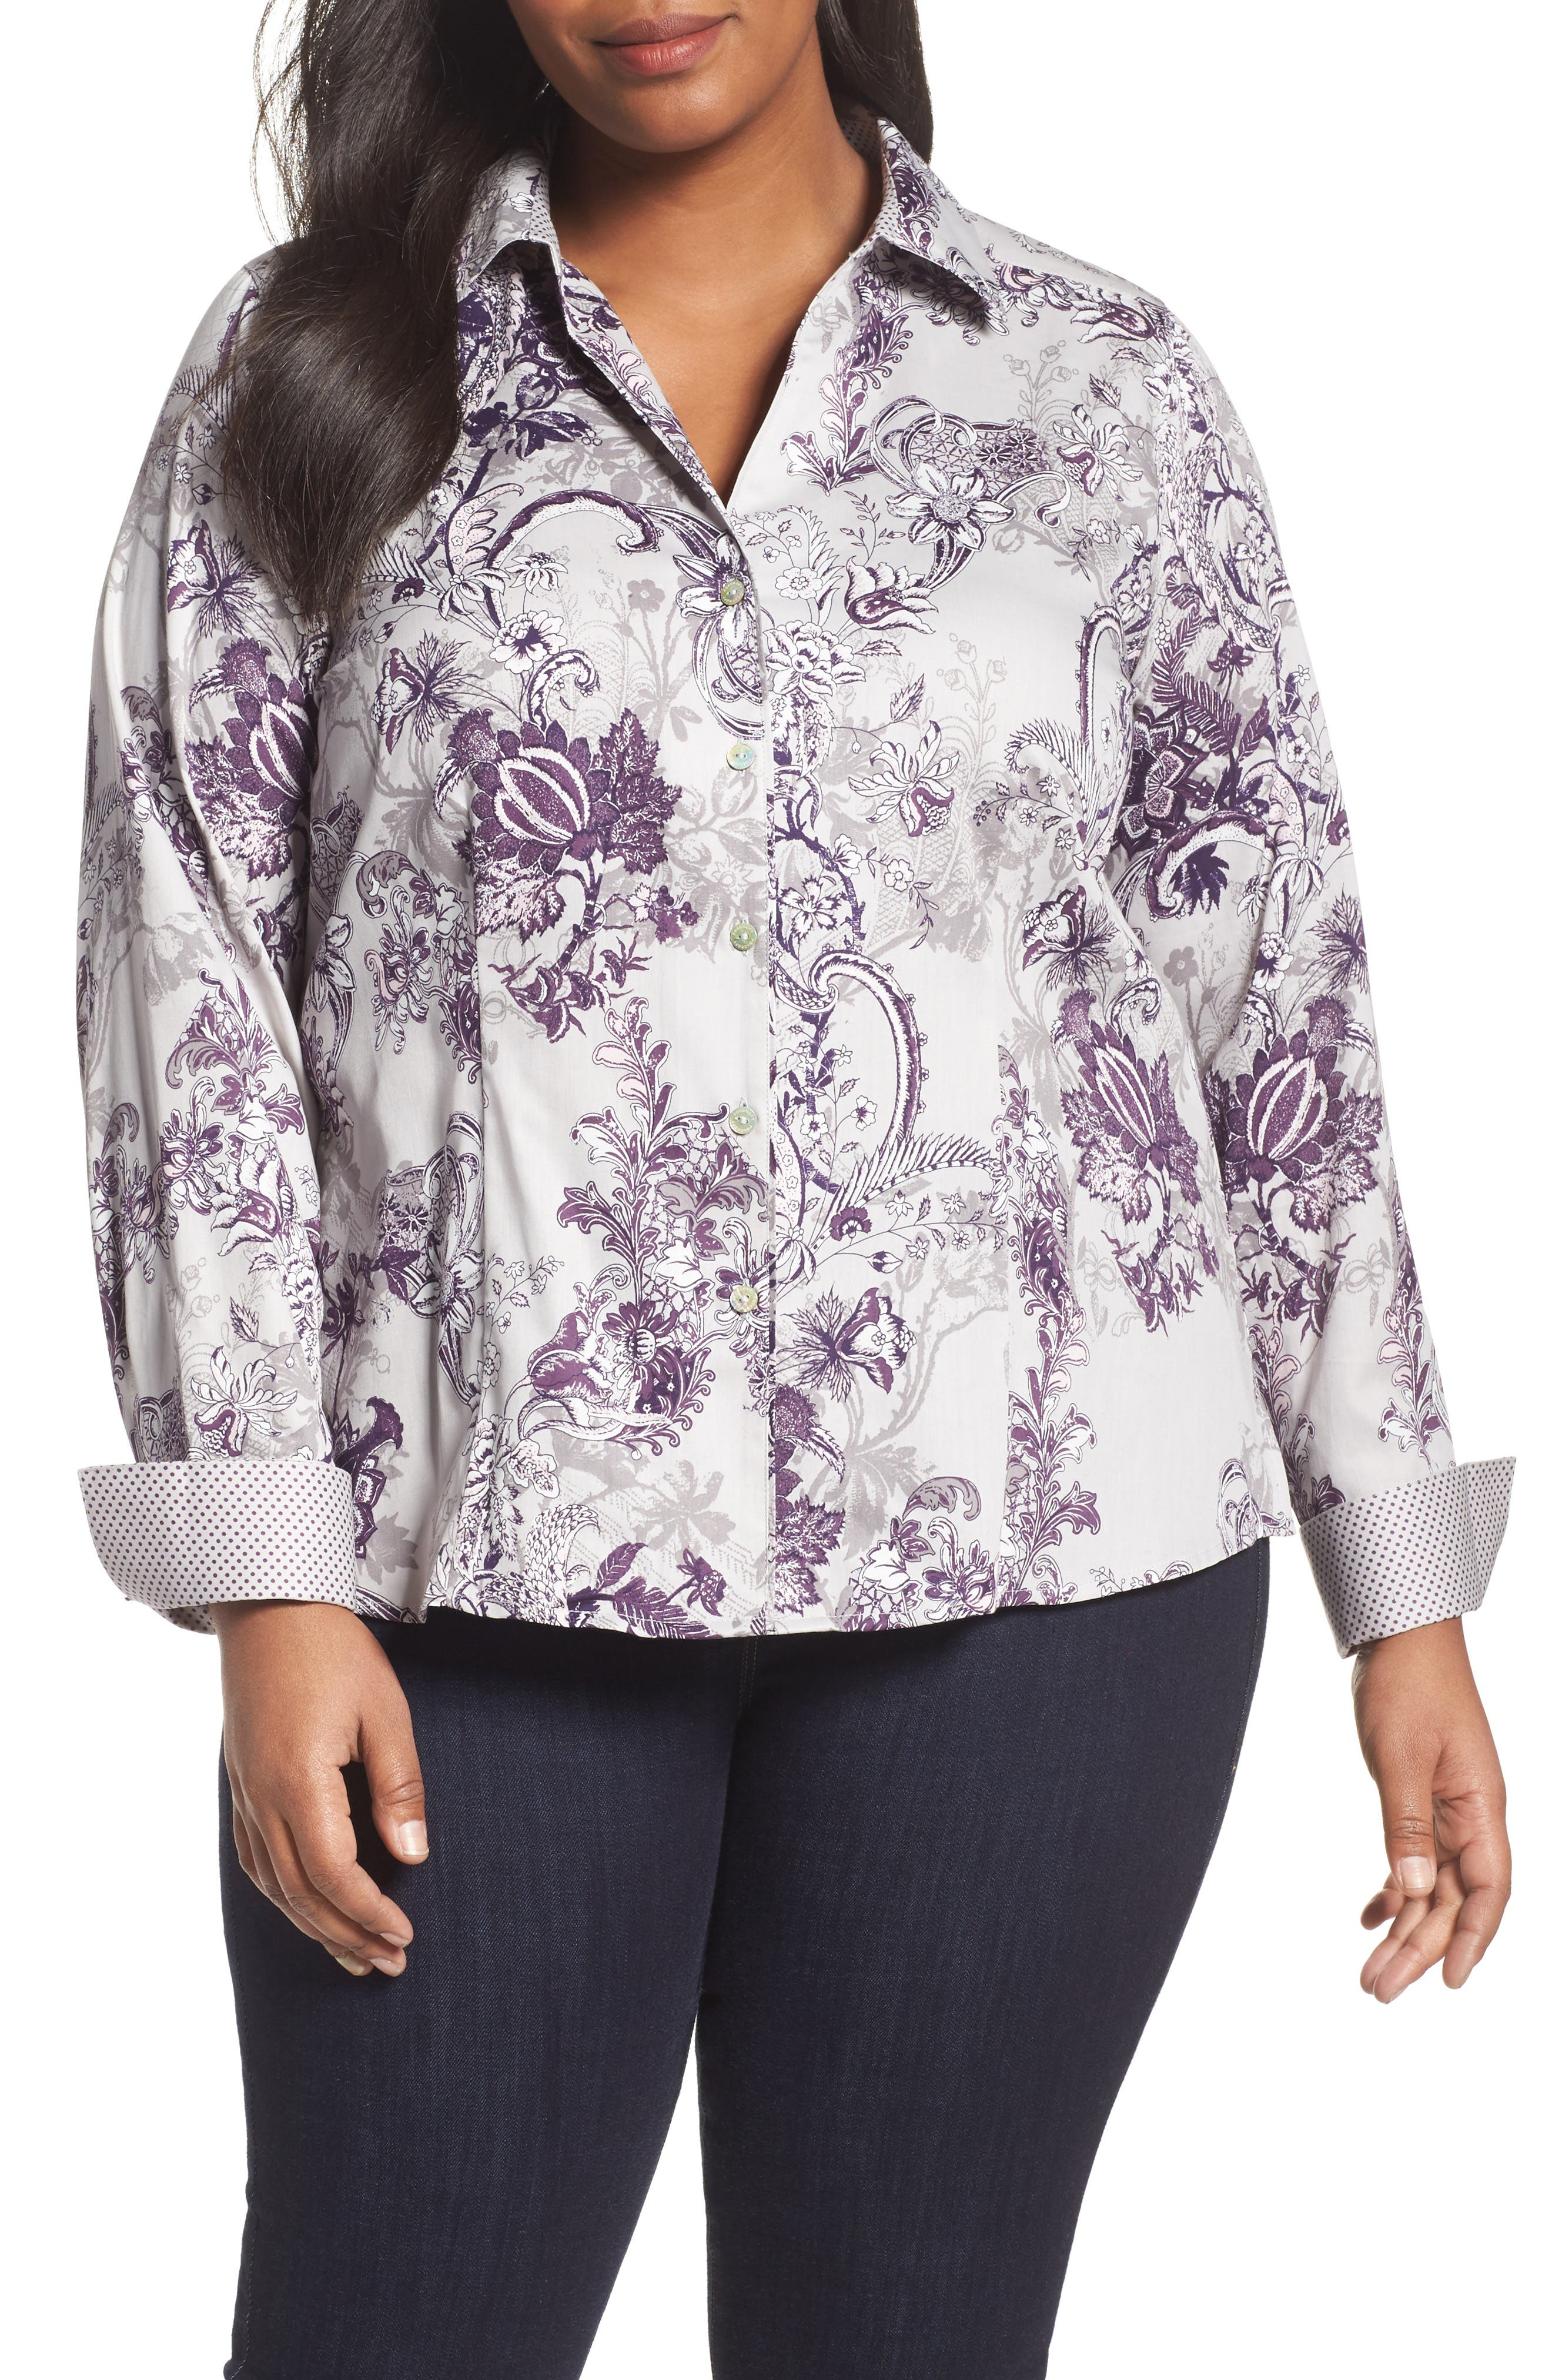 Main Image - Foxcroft Floral Tapestry Shirt (Plus Size)